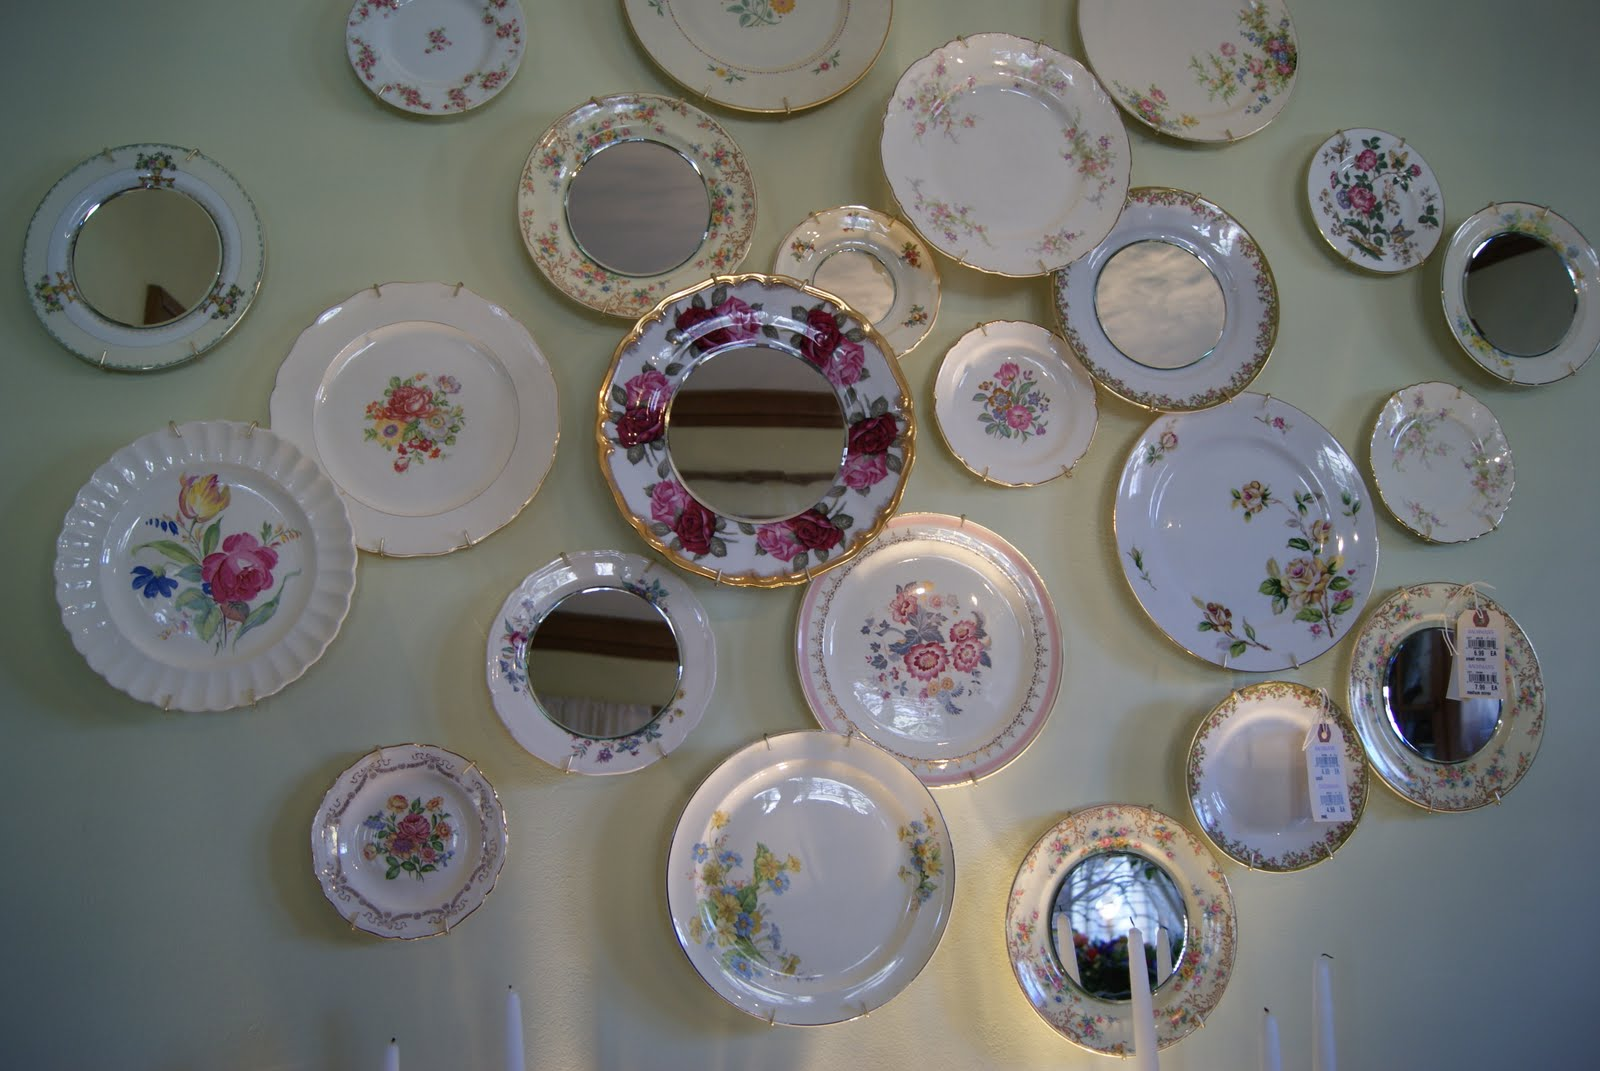 Decorative Plates Dining Room Wall 24 Must See Decor Ideas To Make